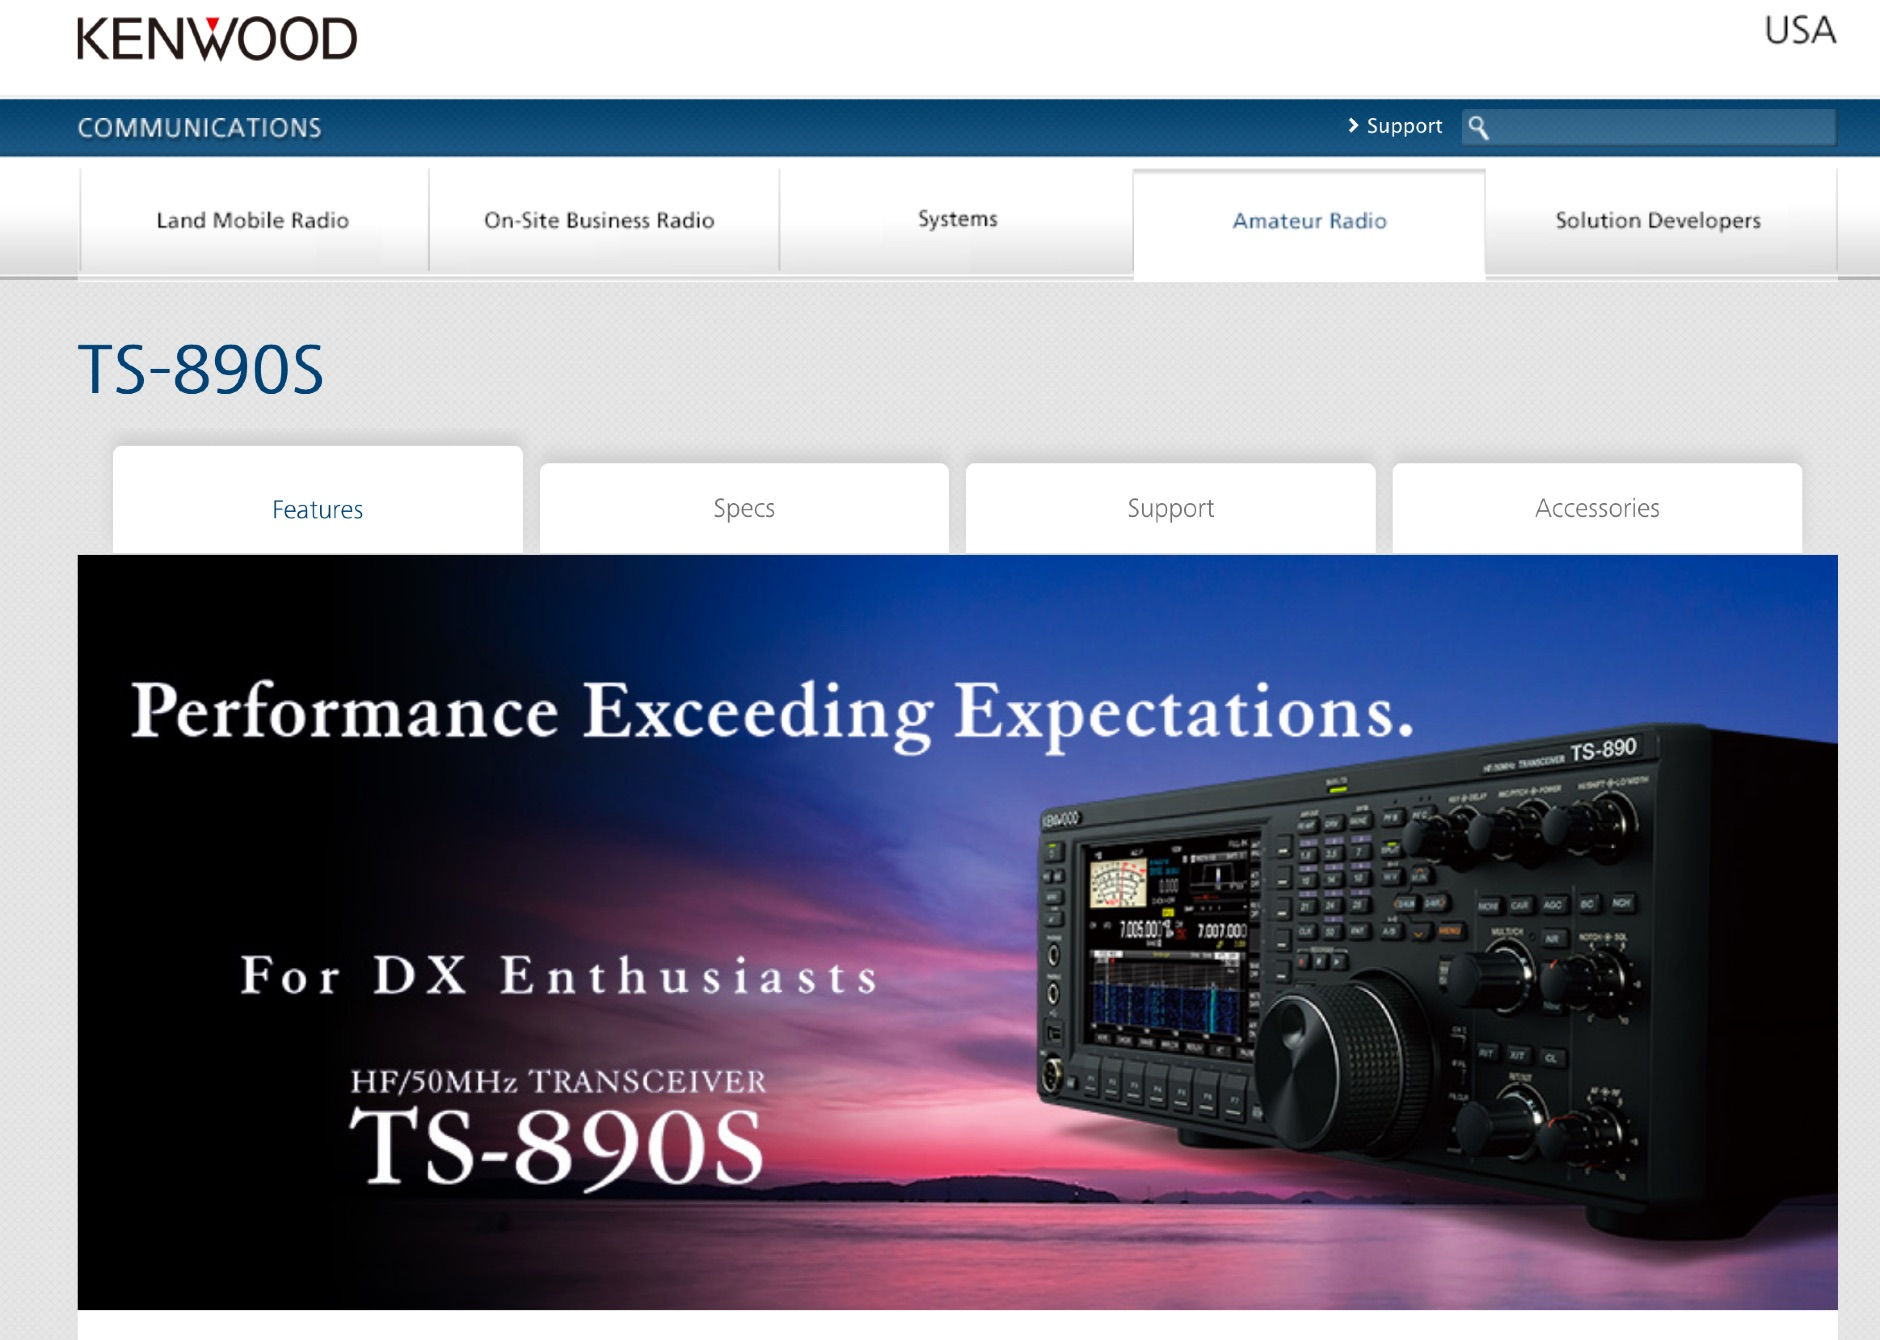 Kenwood TS-890S Official Web Site